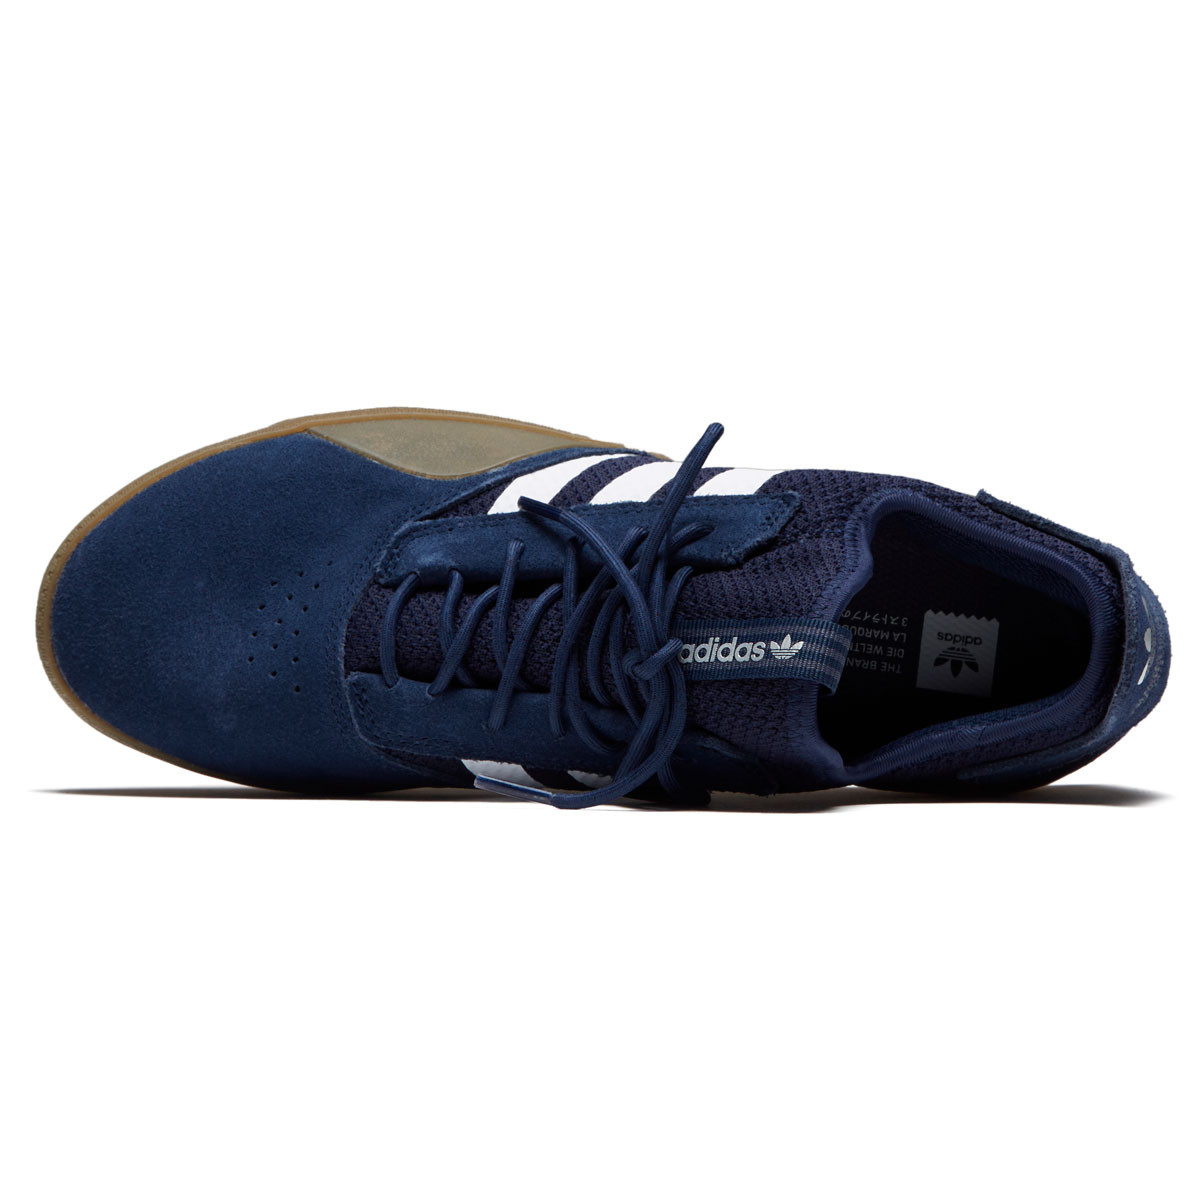 lowest price 19125 4a0cb Adidas 3ST.001 Shoes - Collegiate NavyWhiteGum - 8.0